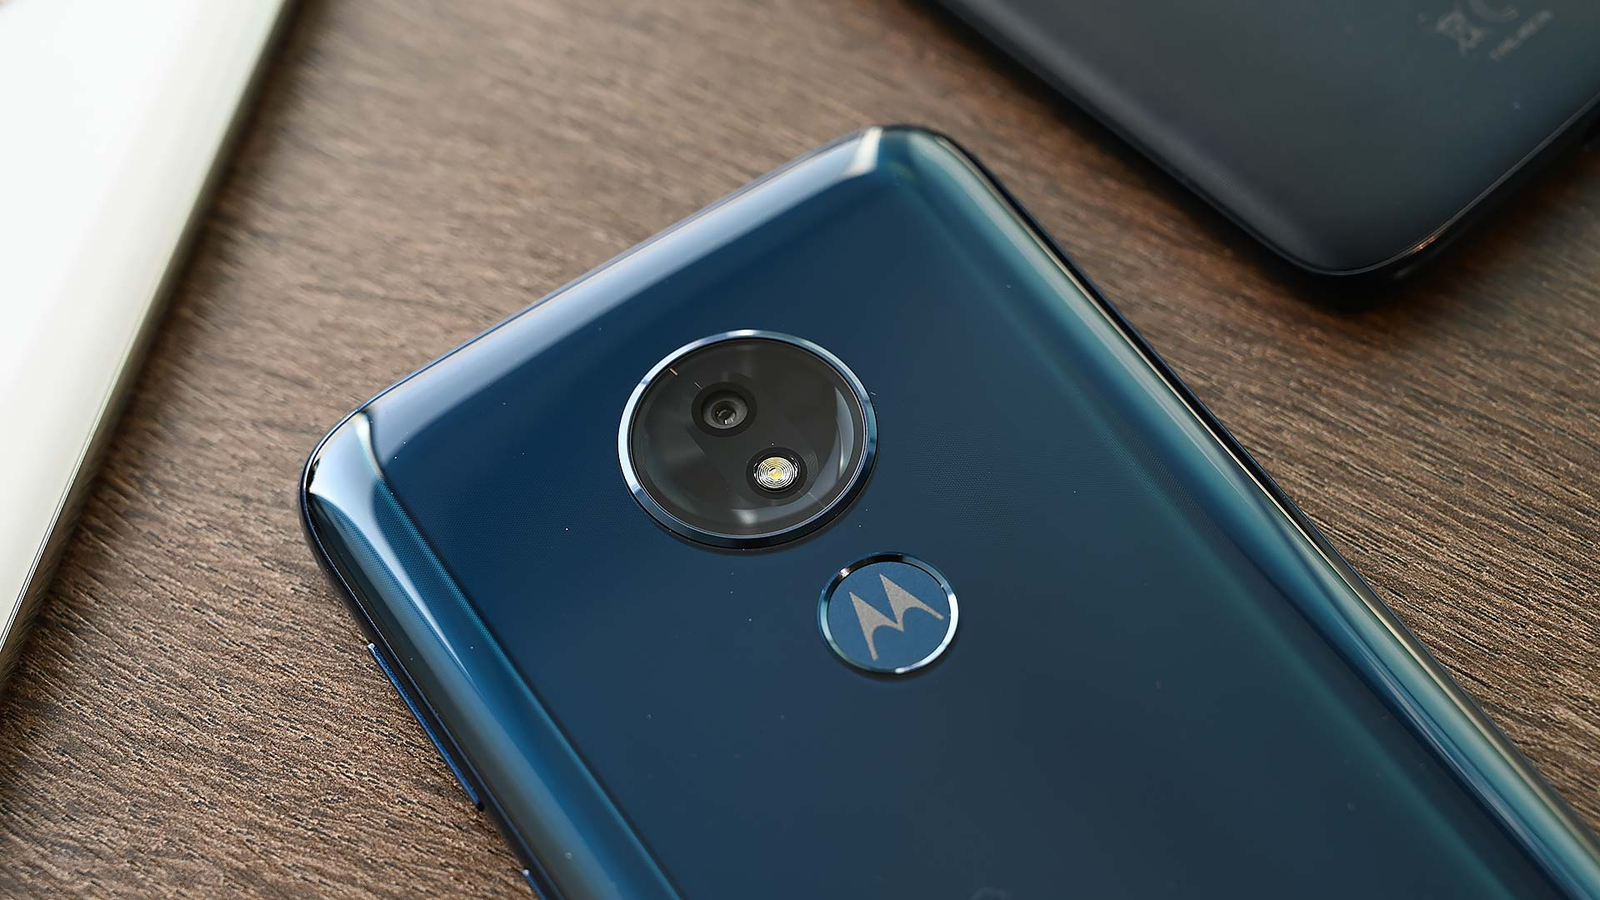 The main difference between the G7 and G7 Power aside from the latter's much larger battery are the G7 Power's single rear camera and lower-res screen.